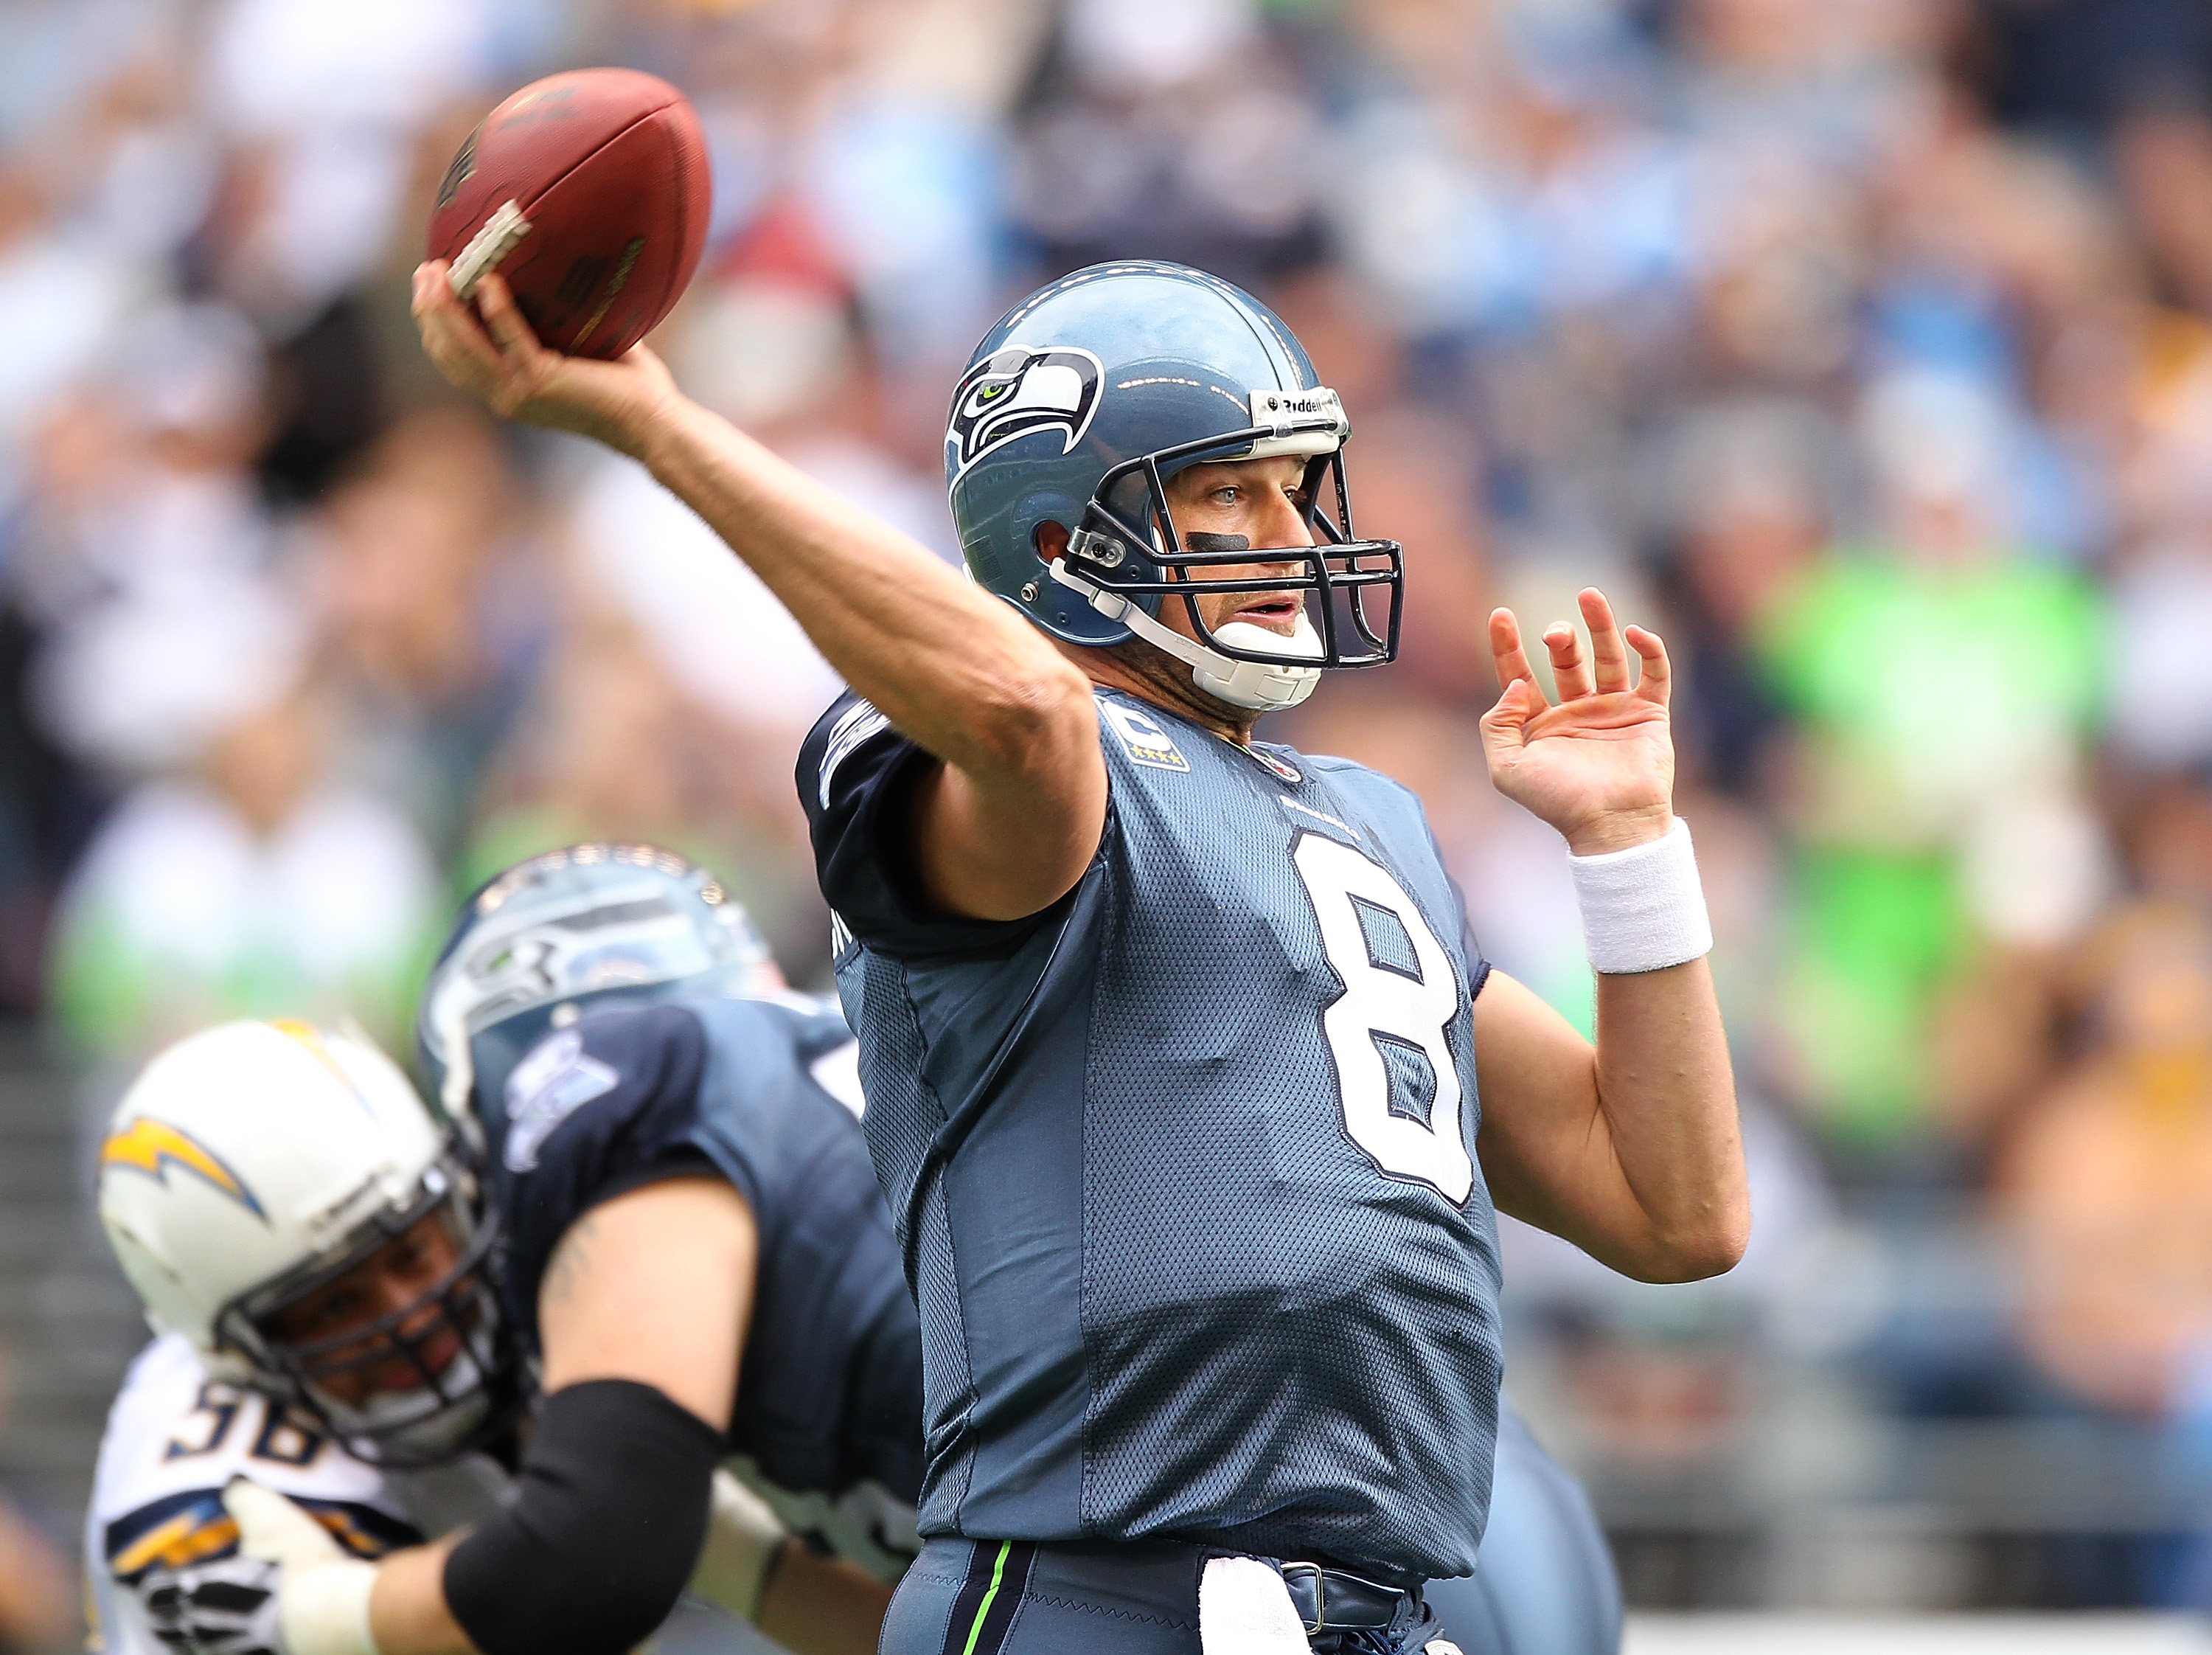 SEATTLE - SEPTEMBER 26:  Quarterback Matt Hasselbeck #8 of the Seattle Seahawks passes against the San Diego Chargers at Qwest Field on September 26, 2010 in Seattle, Washington. The Seahawks defeated the Chargers 27-20. (Photo by Otto Greule Jr/Getty Ima